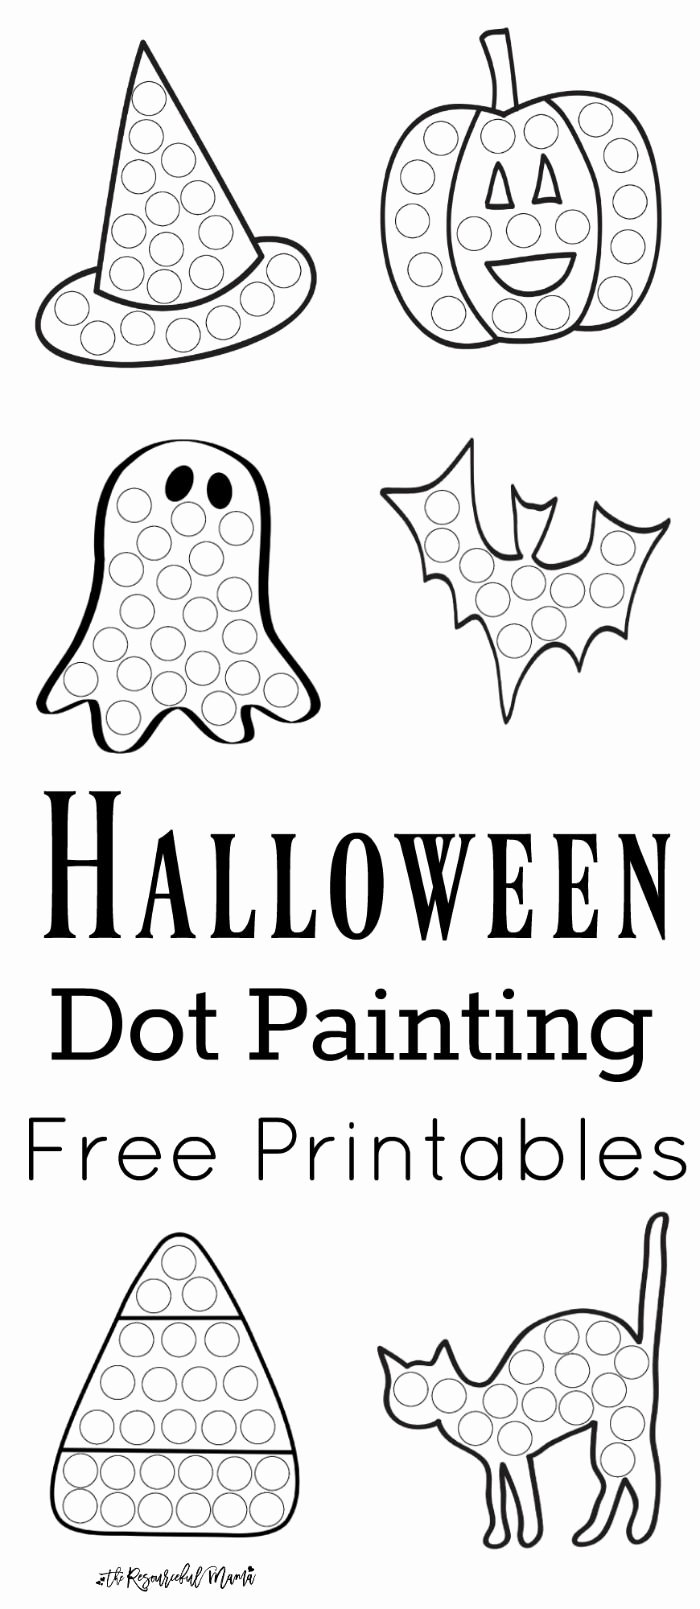 Halloween Printable Worksheets for Preschoolers Lovely Halloween Dot Painting Free Printables